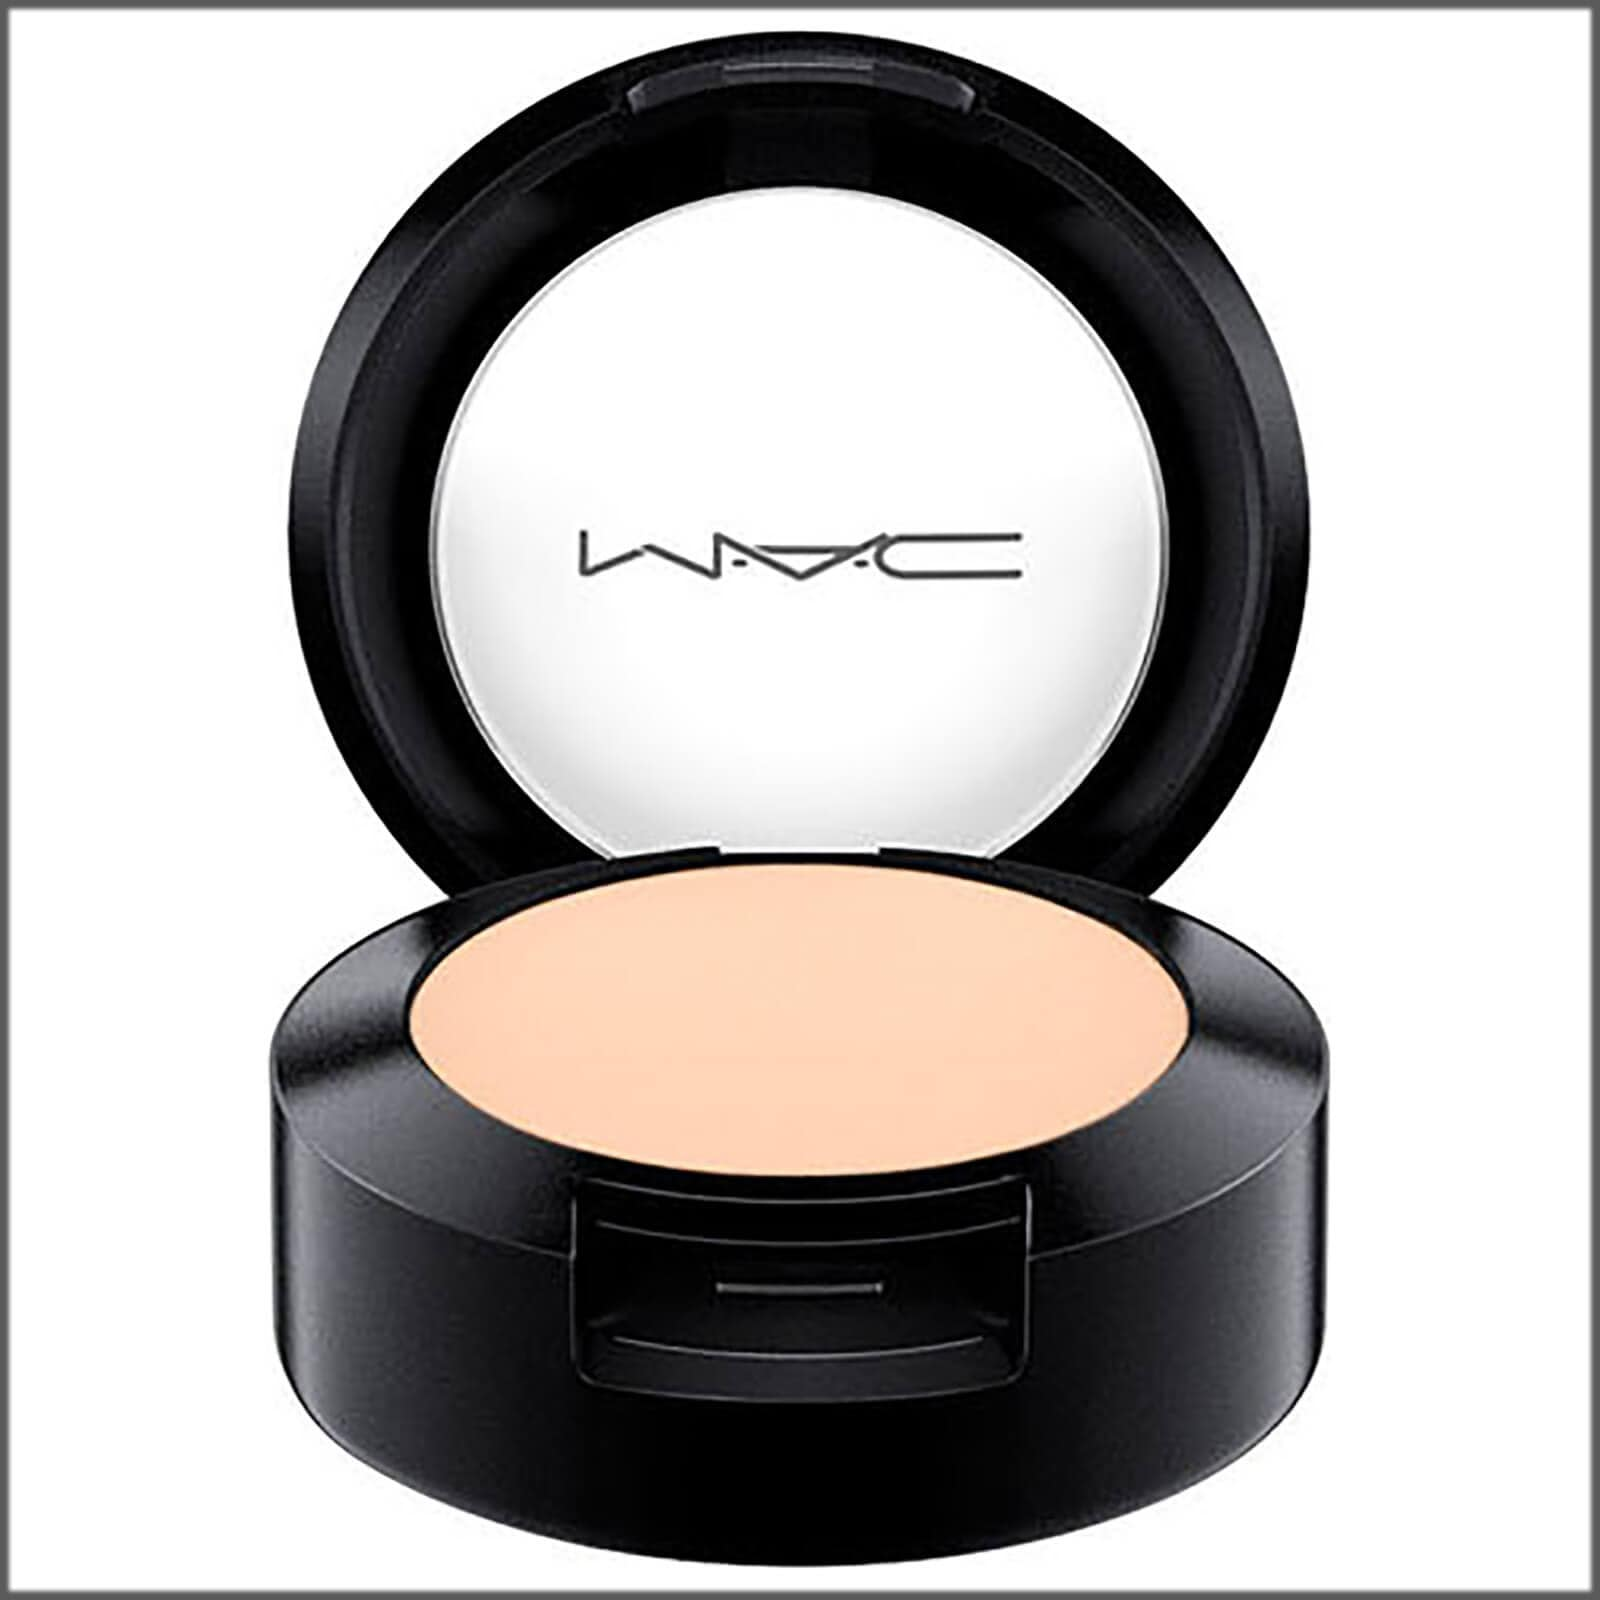 Best concealer by MAC for medium brown skin